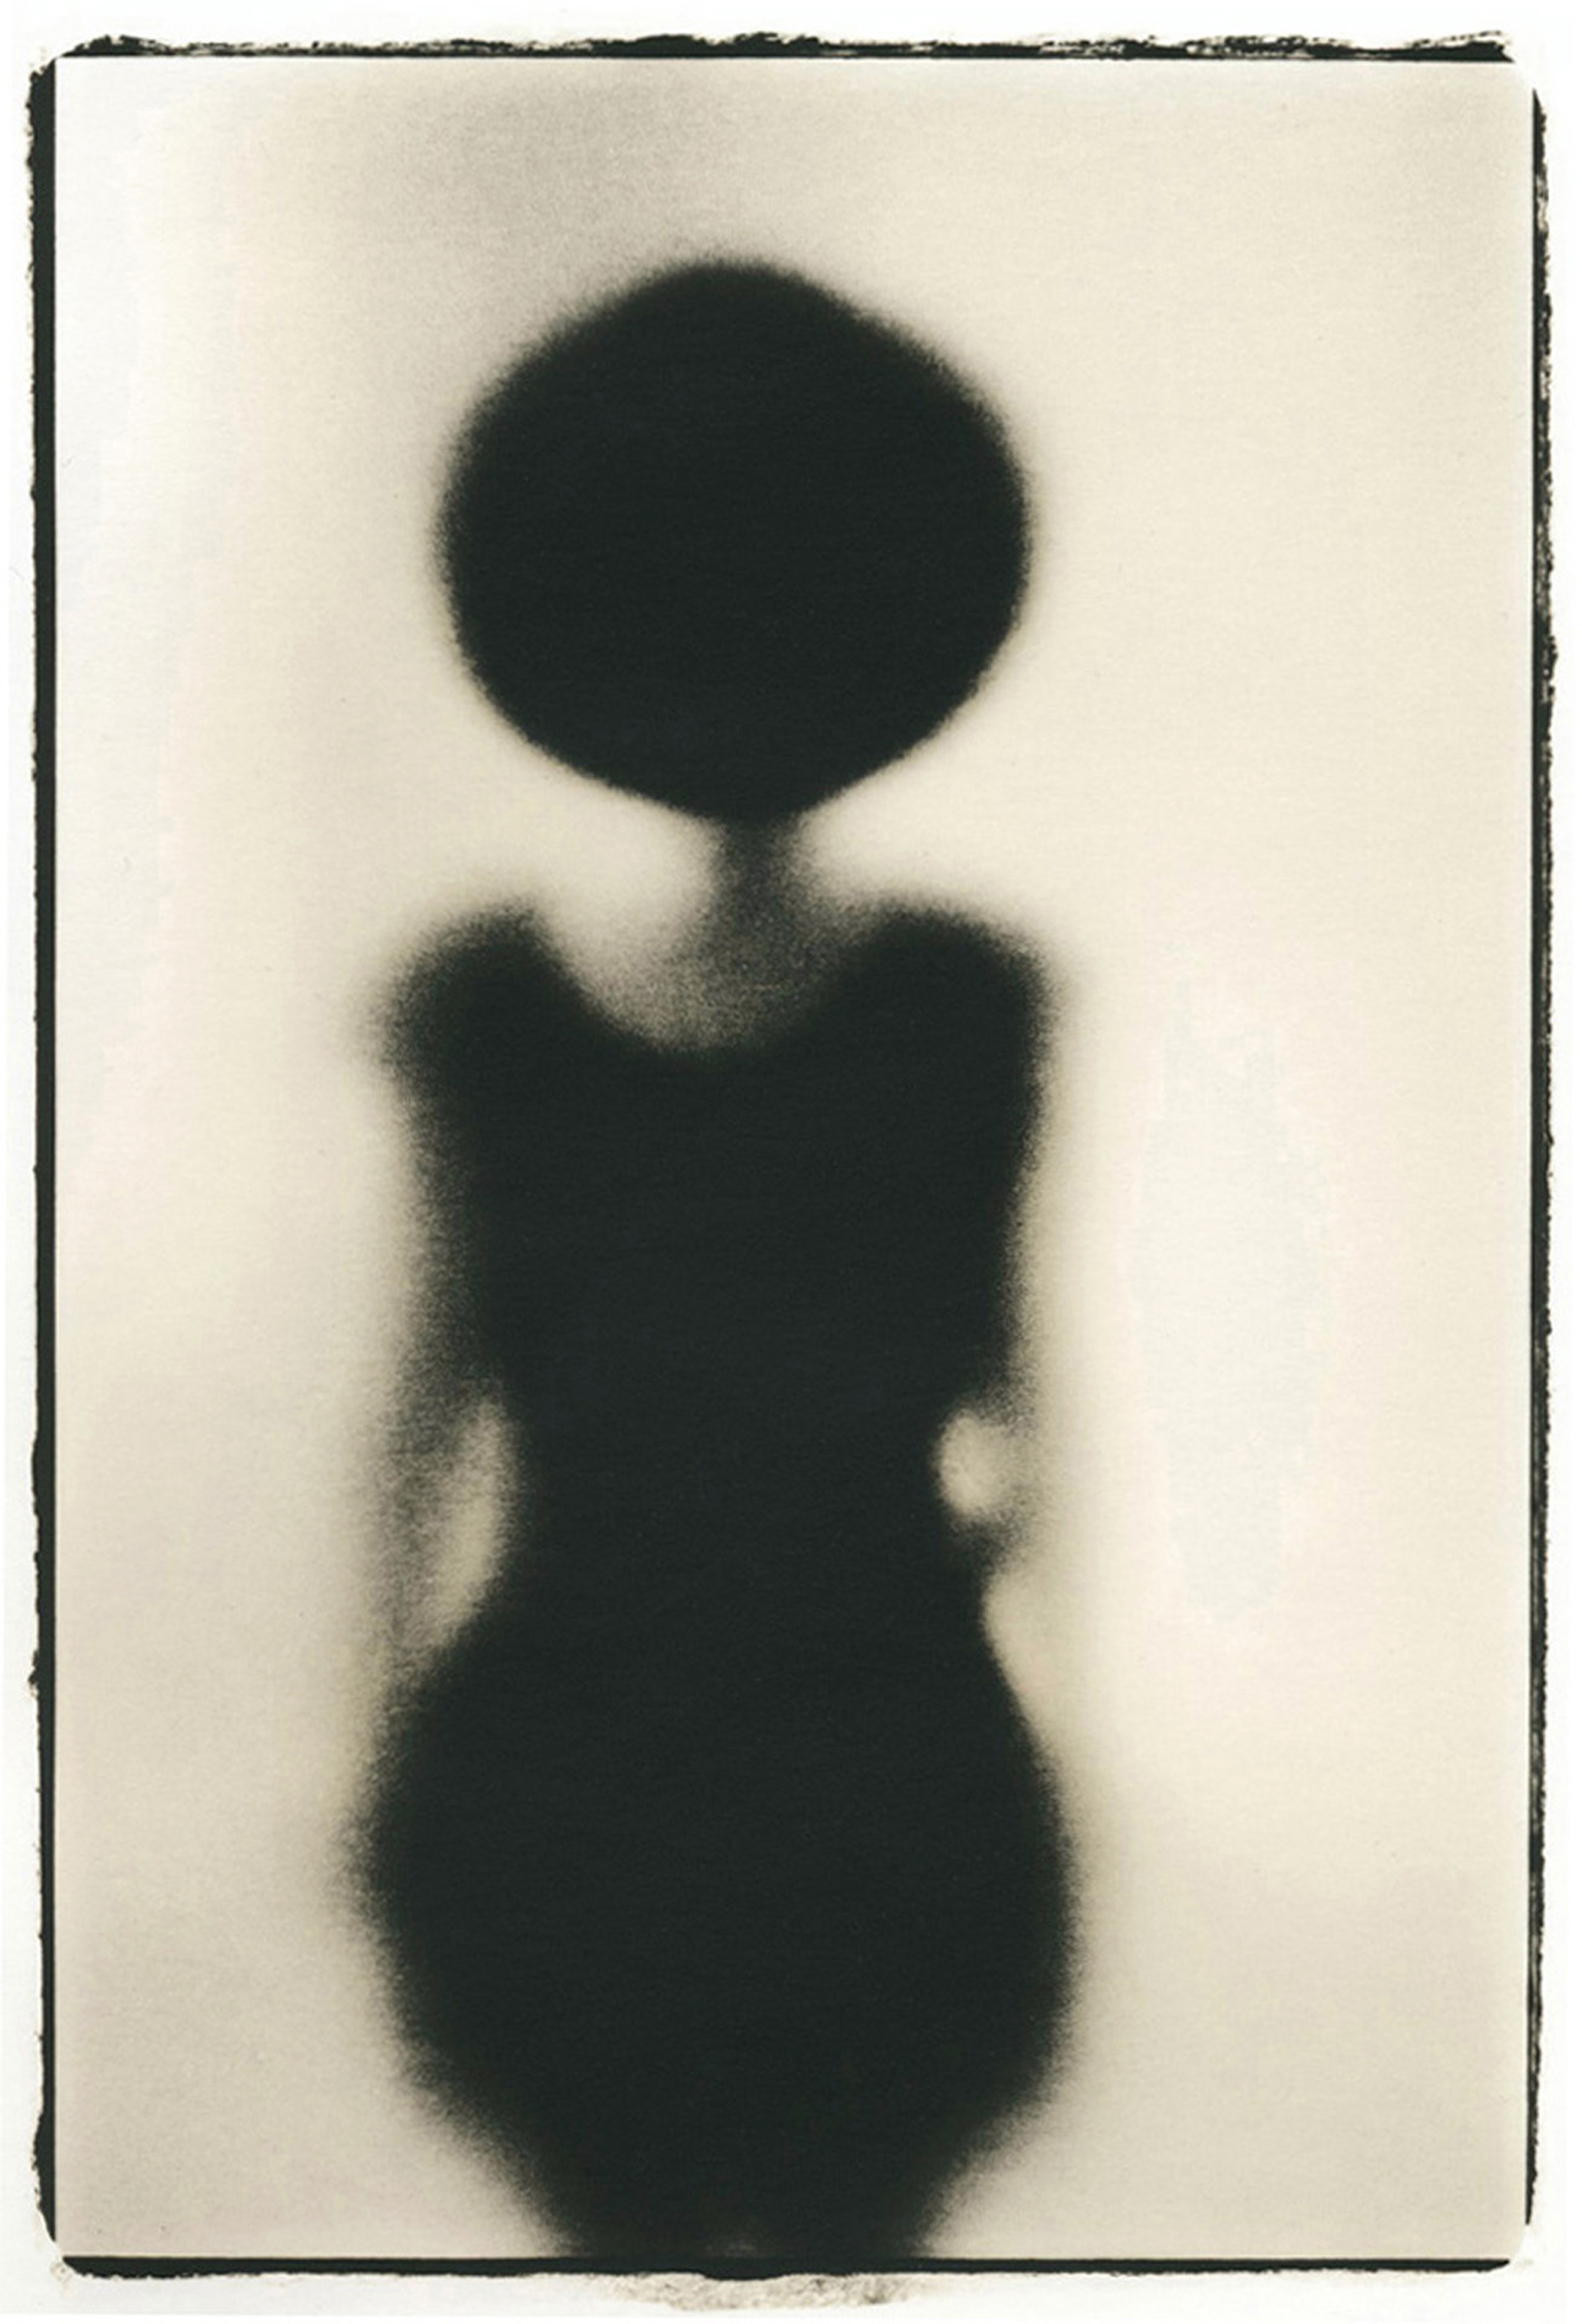 Girl in Jodhpurs   Susan de Witt  6 x 9, Edition of 5, signed and numbered Inkjet print from lith original